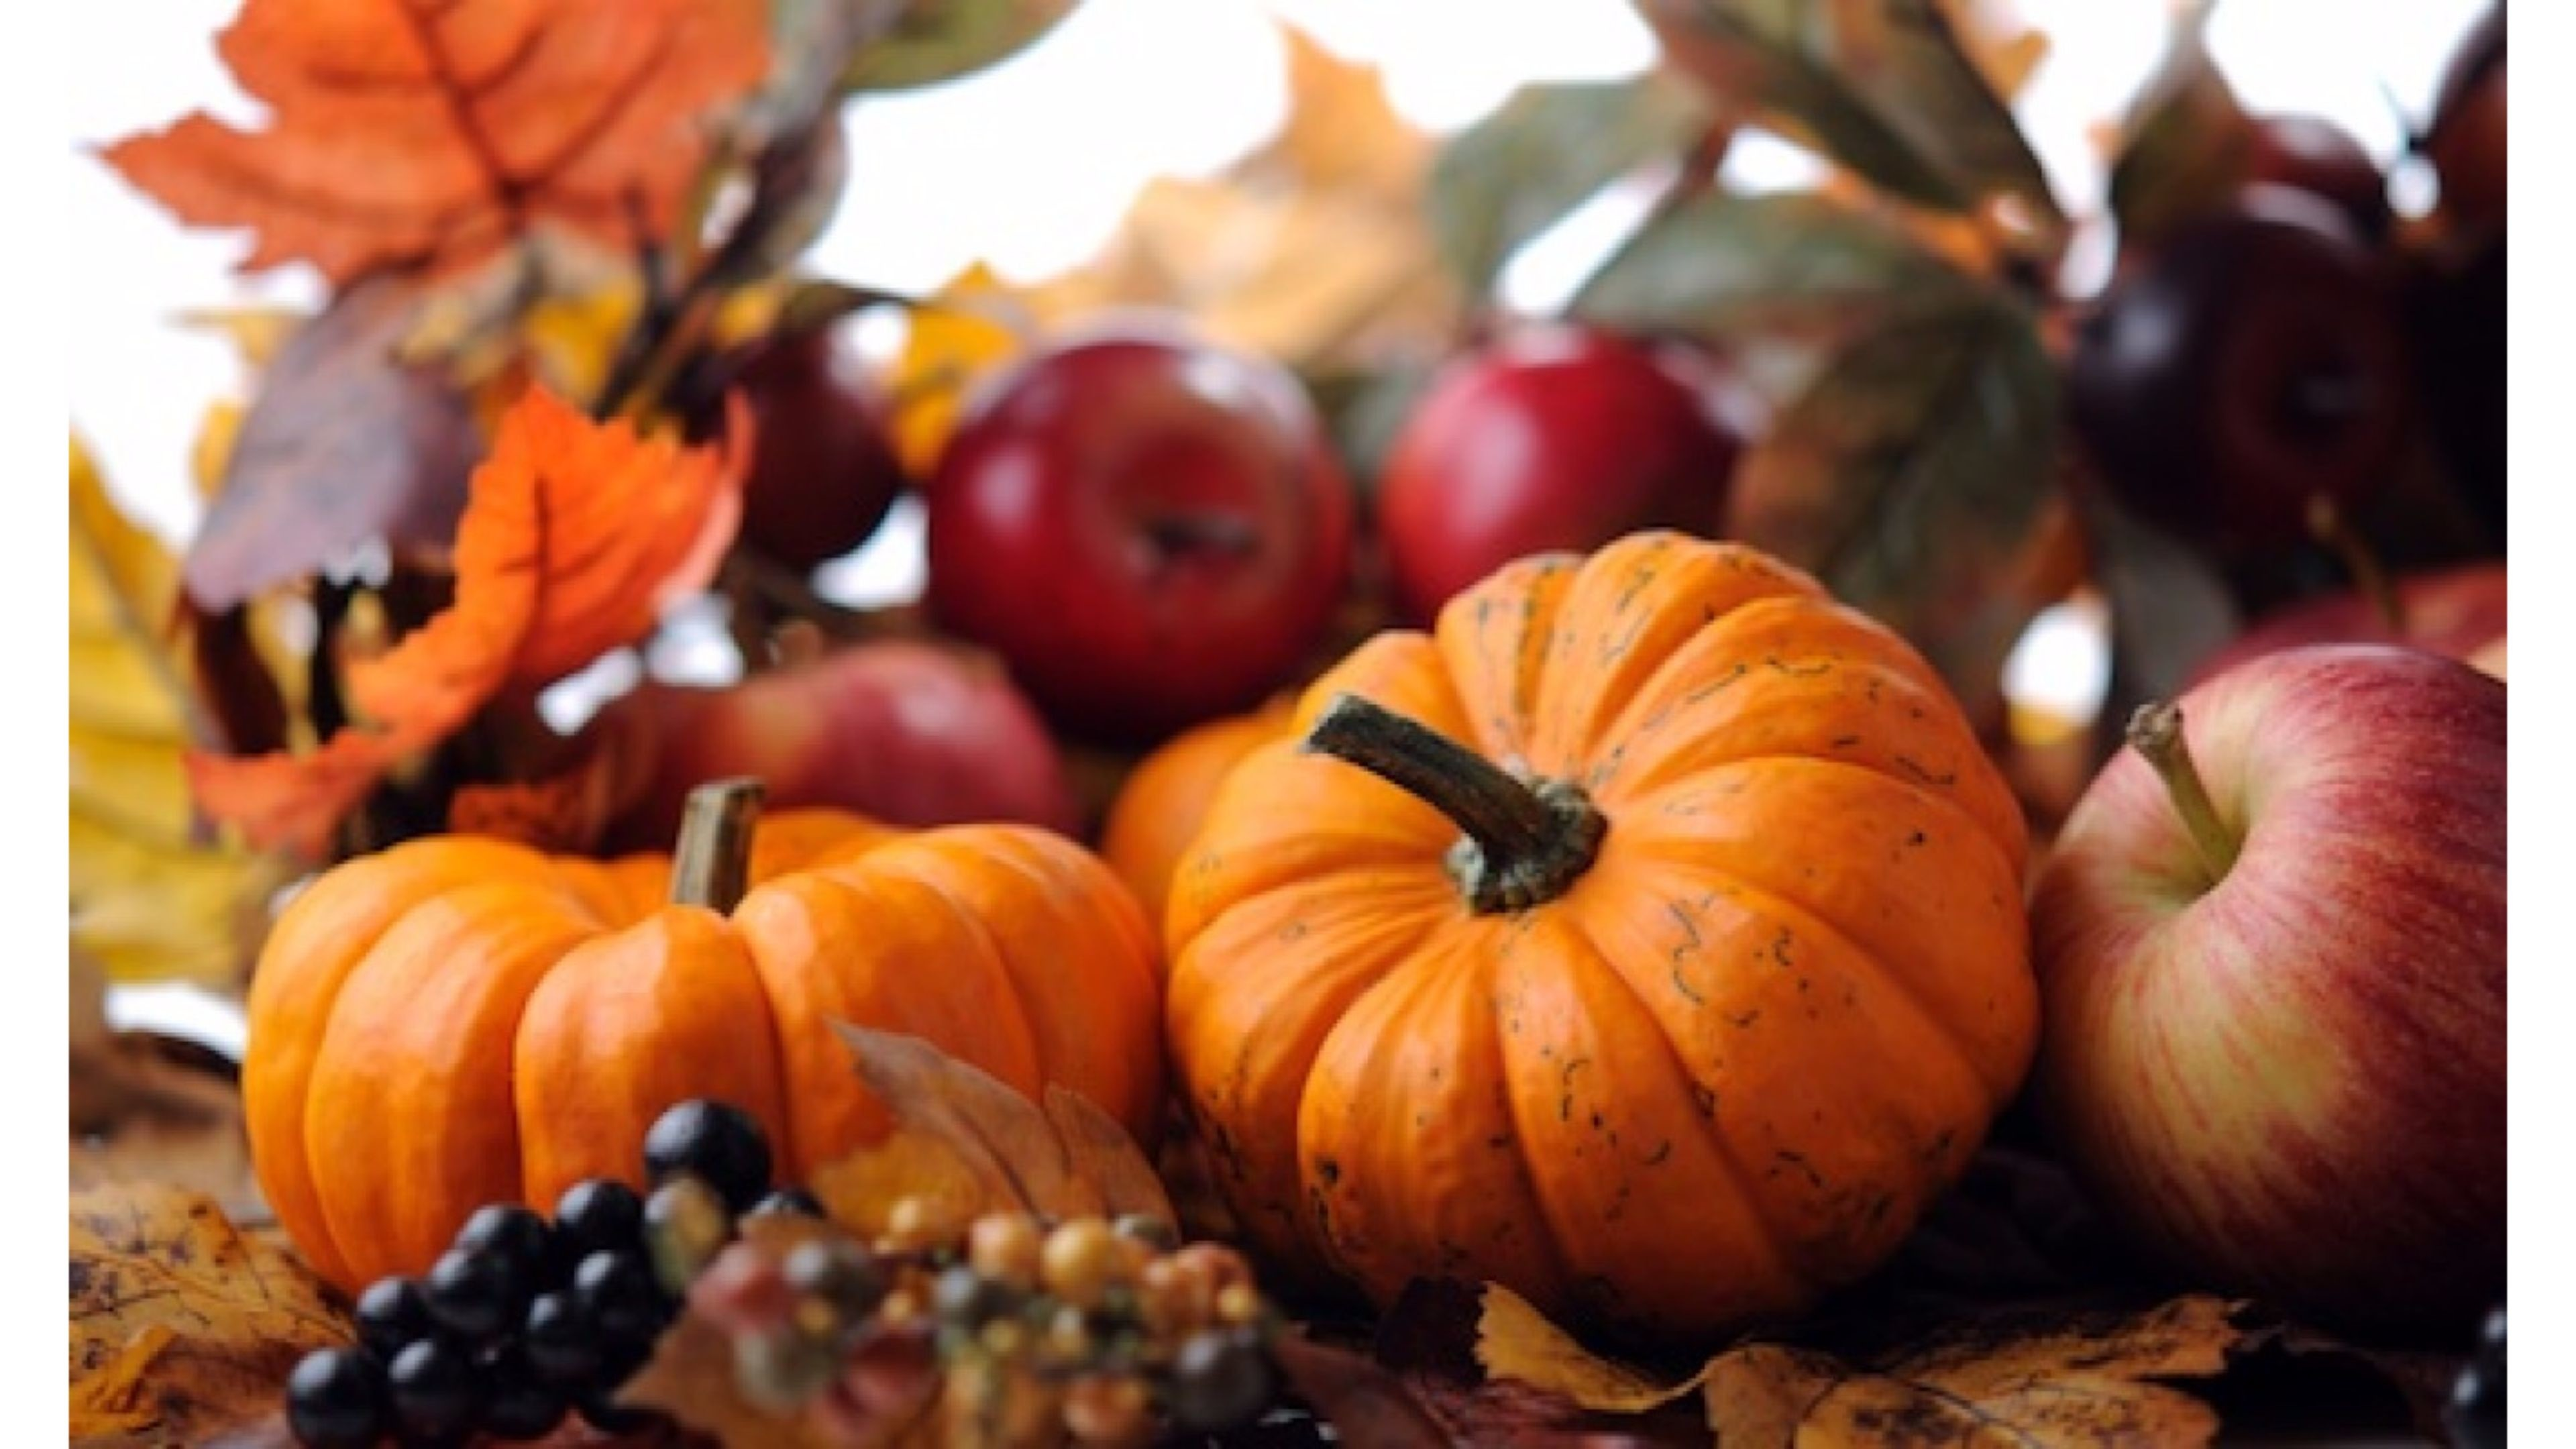 Fall Wallpaper Backgrounds With Pumpkins 55 images 3840x2160